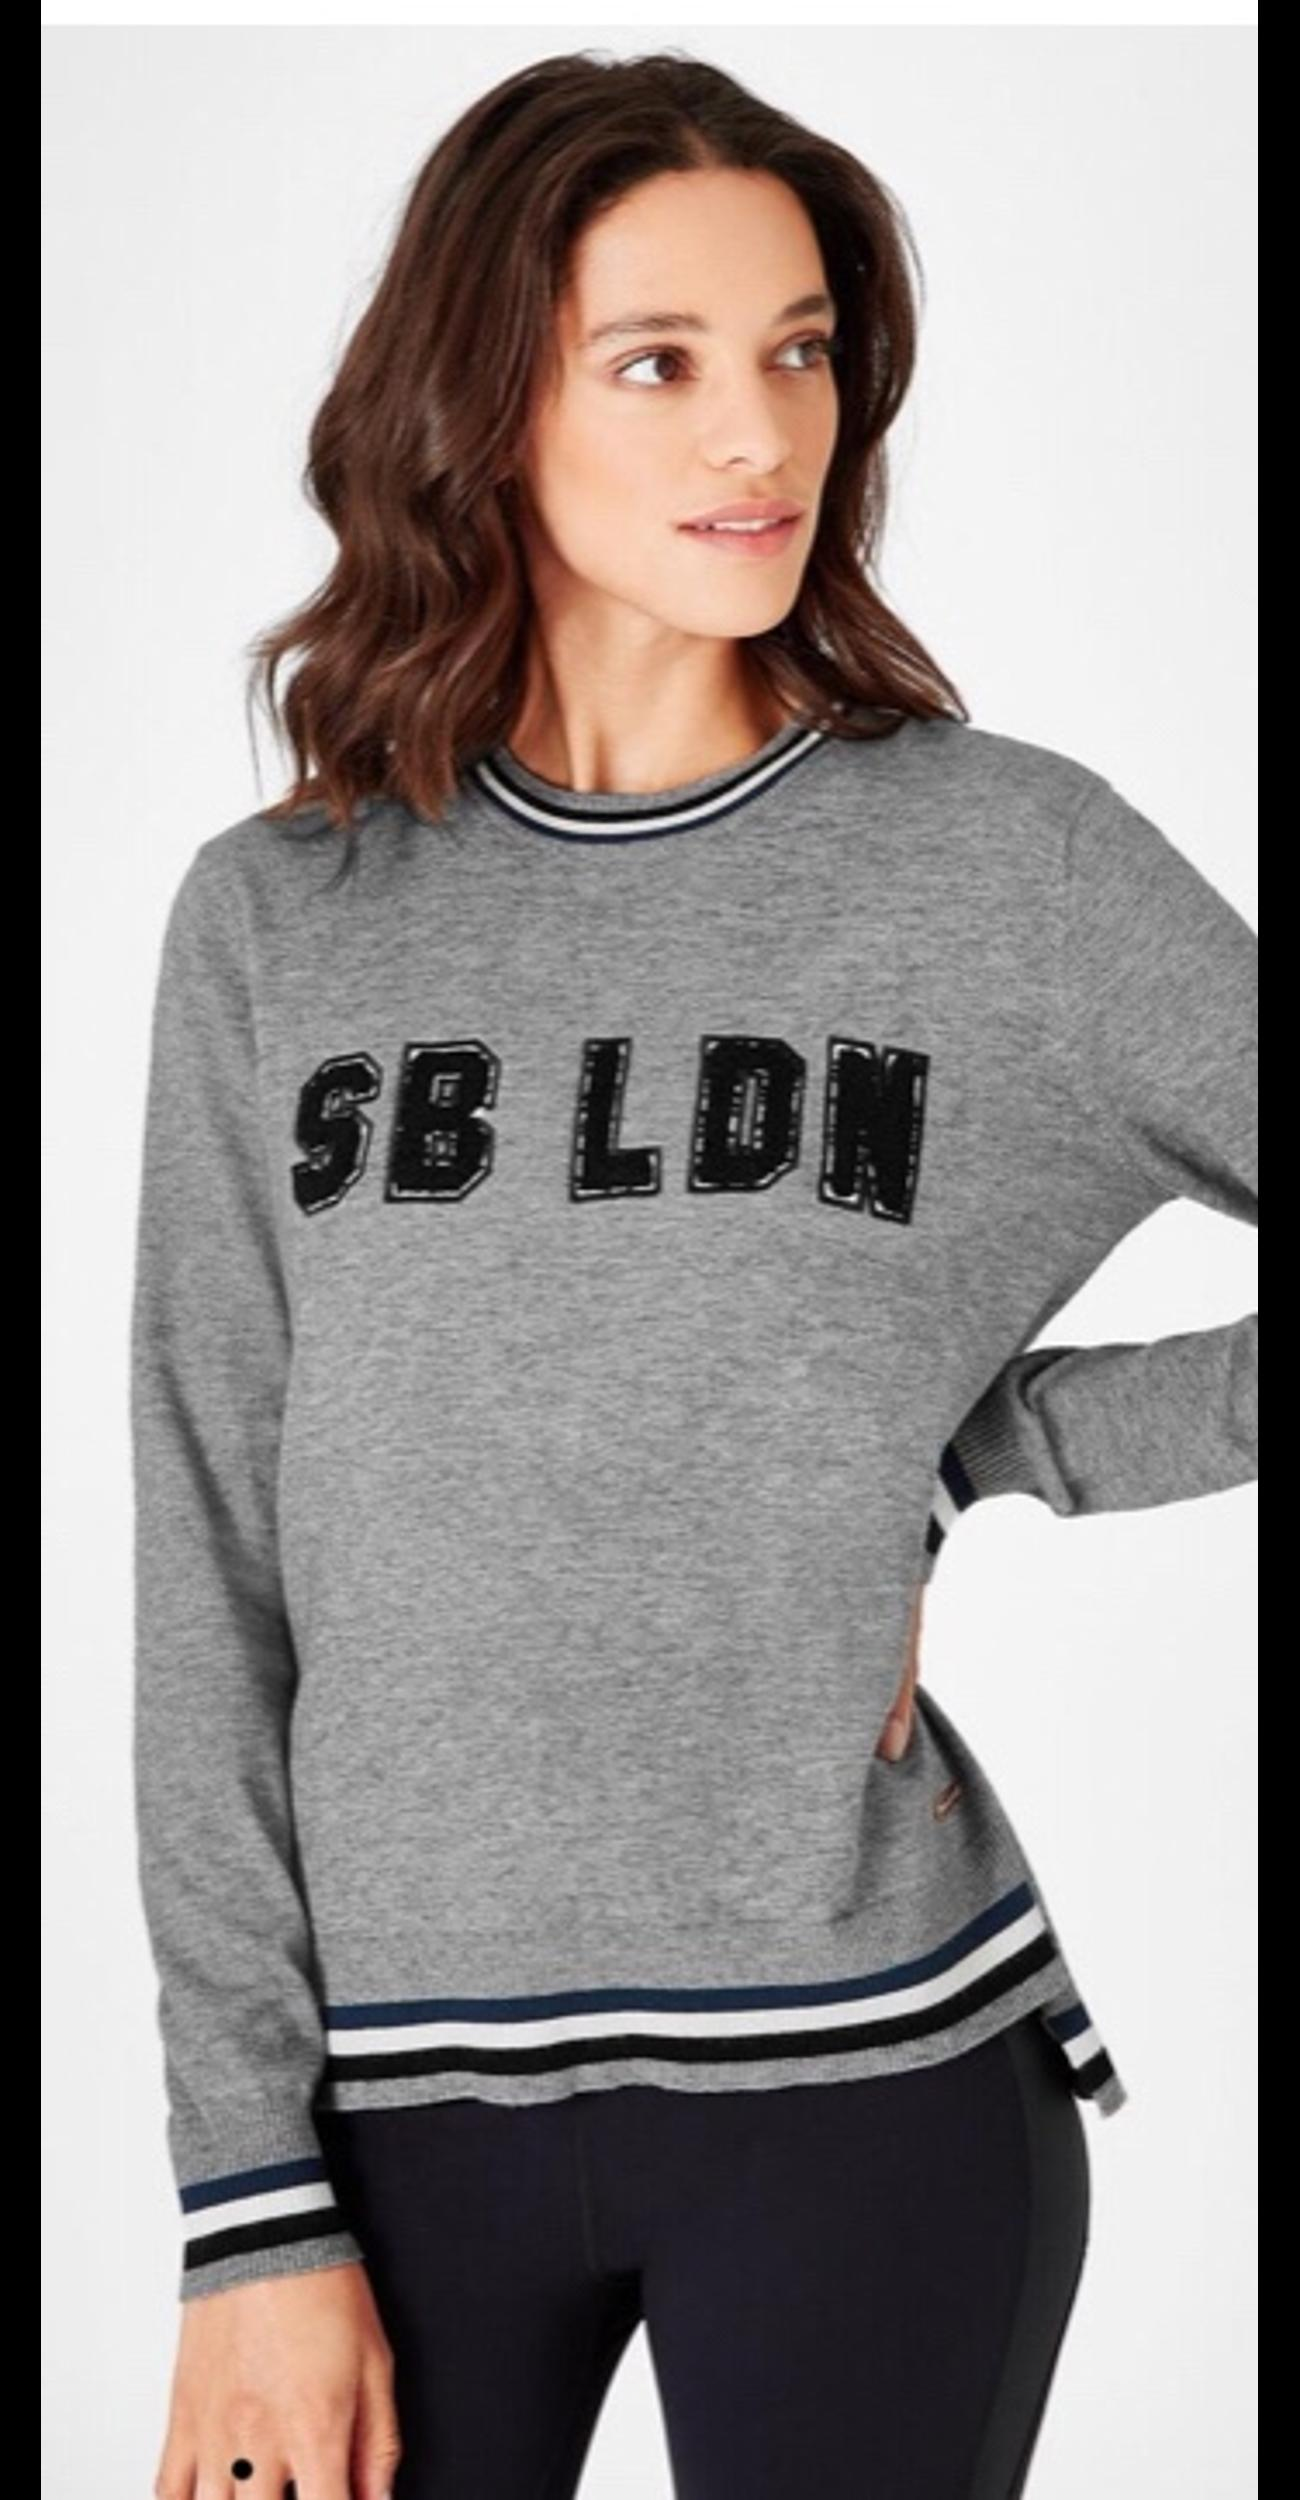 bbd54f27d59 Sweaty Betty SB jumper in S in NW3 London for £34.99 for sale - Shpock